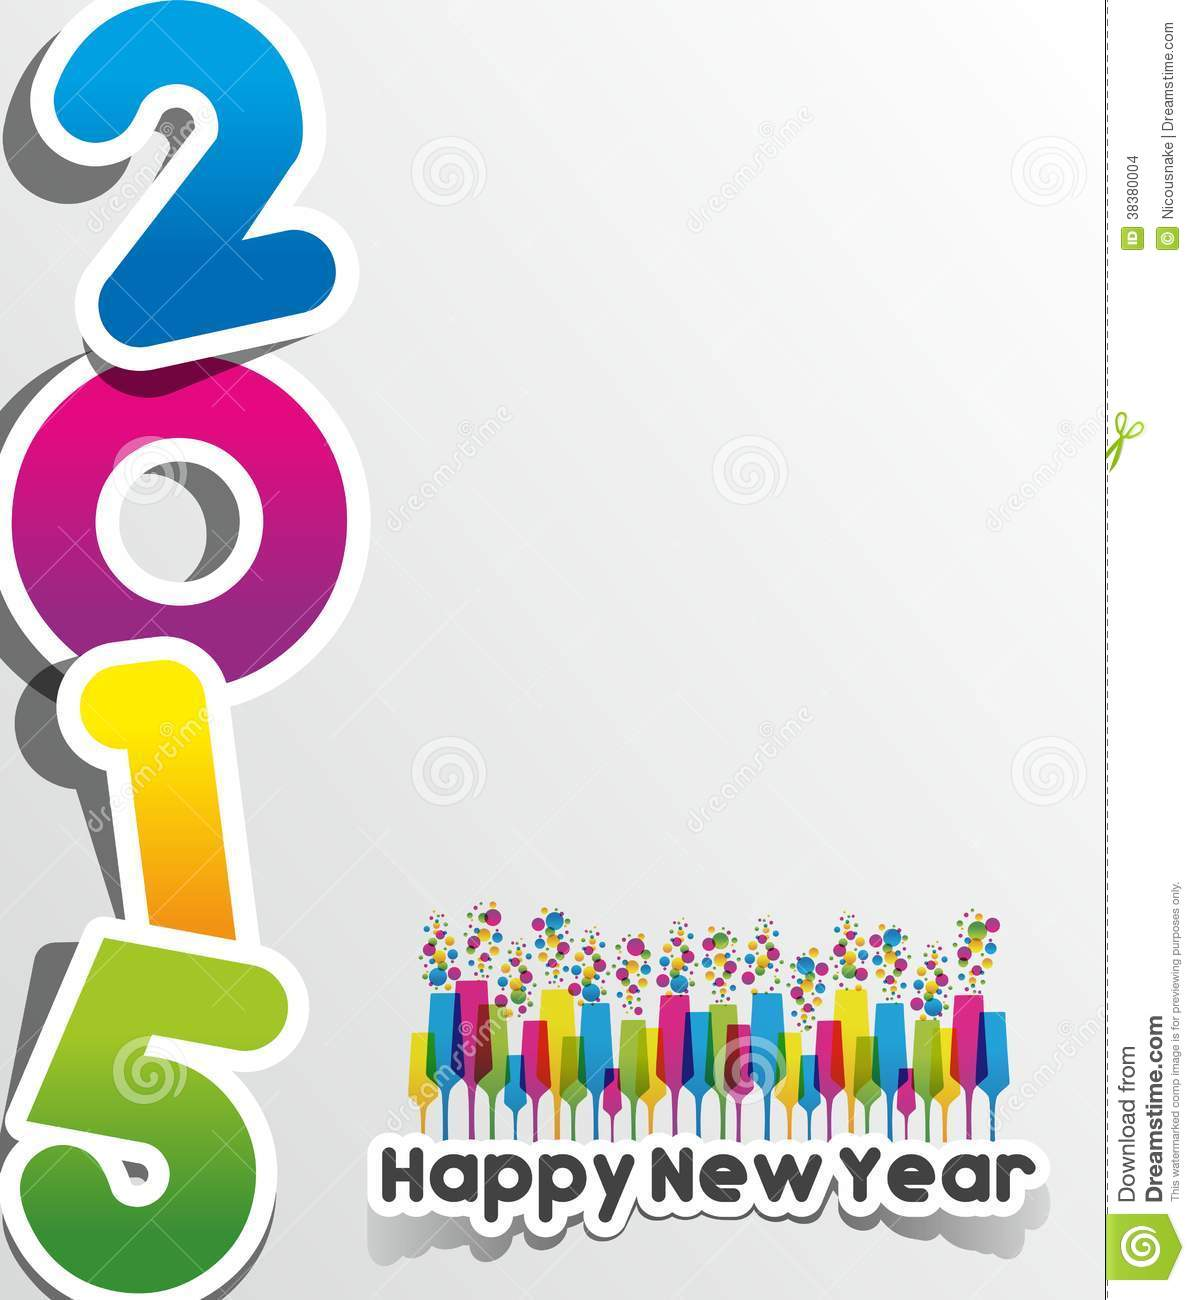 Happy new year 2015 greeting card stock vector illustration of download happy new year 2015 greeting card stock vector illustration of happy calendar m4hsunfo